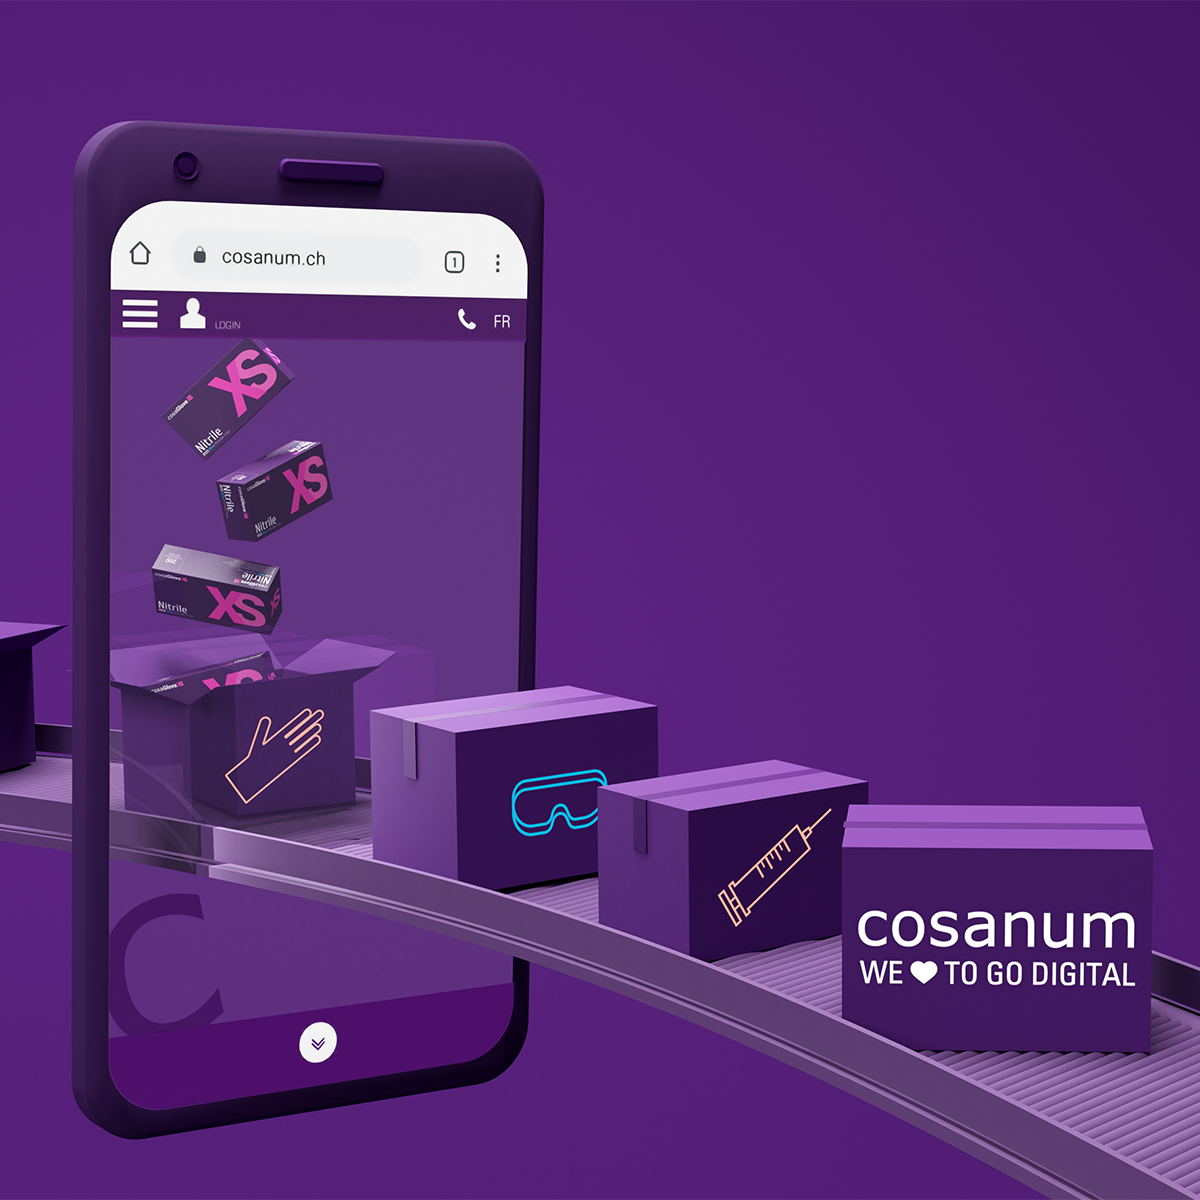 Cosanum Goes Digital